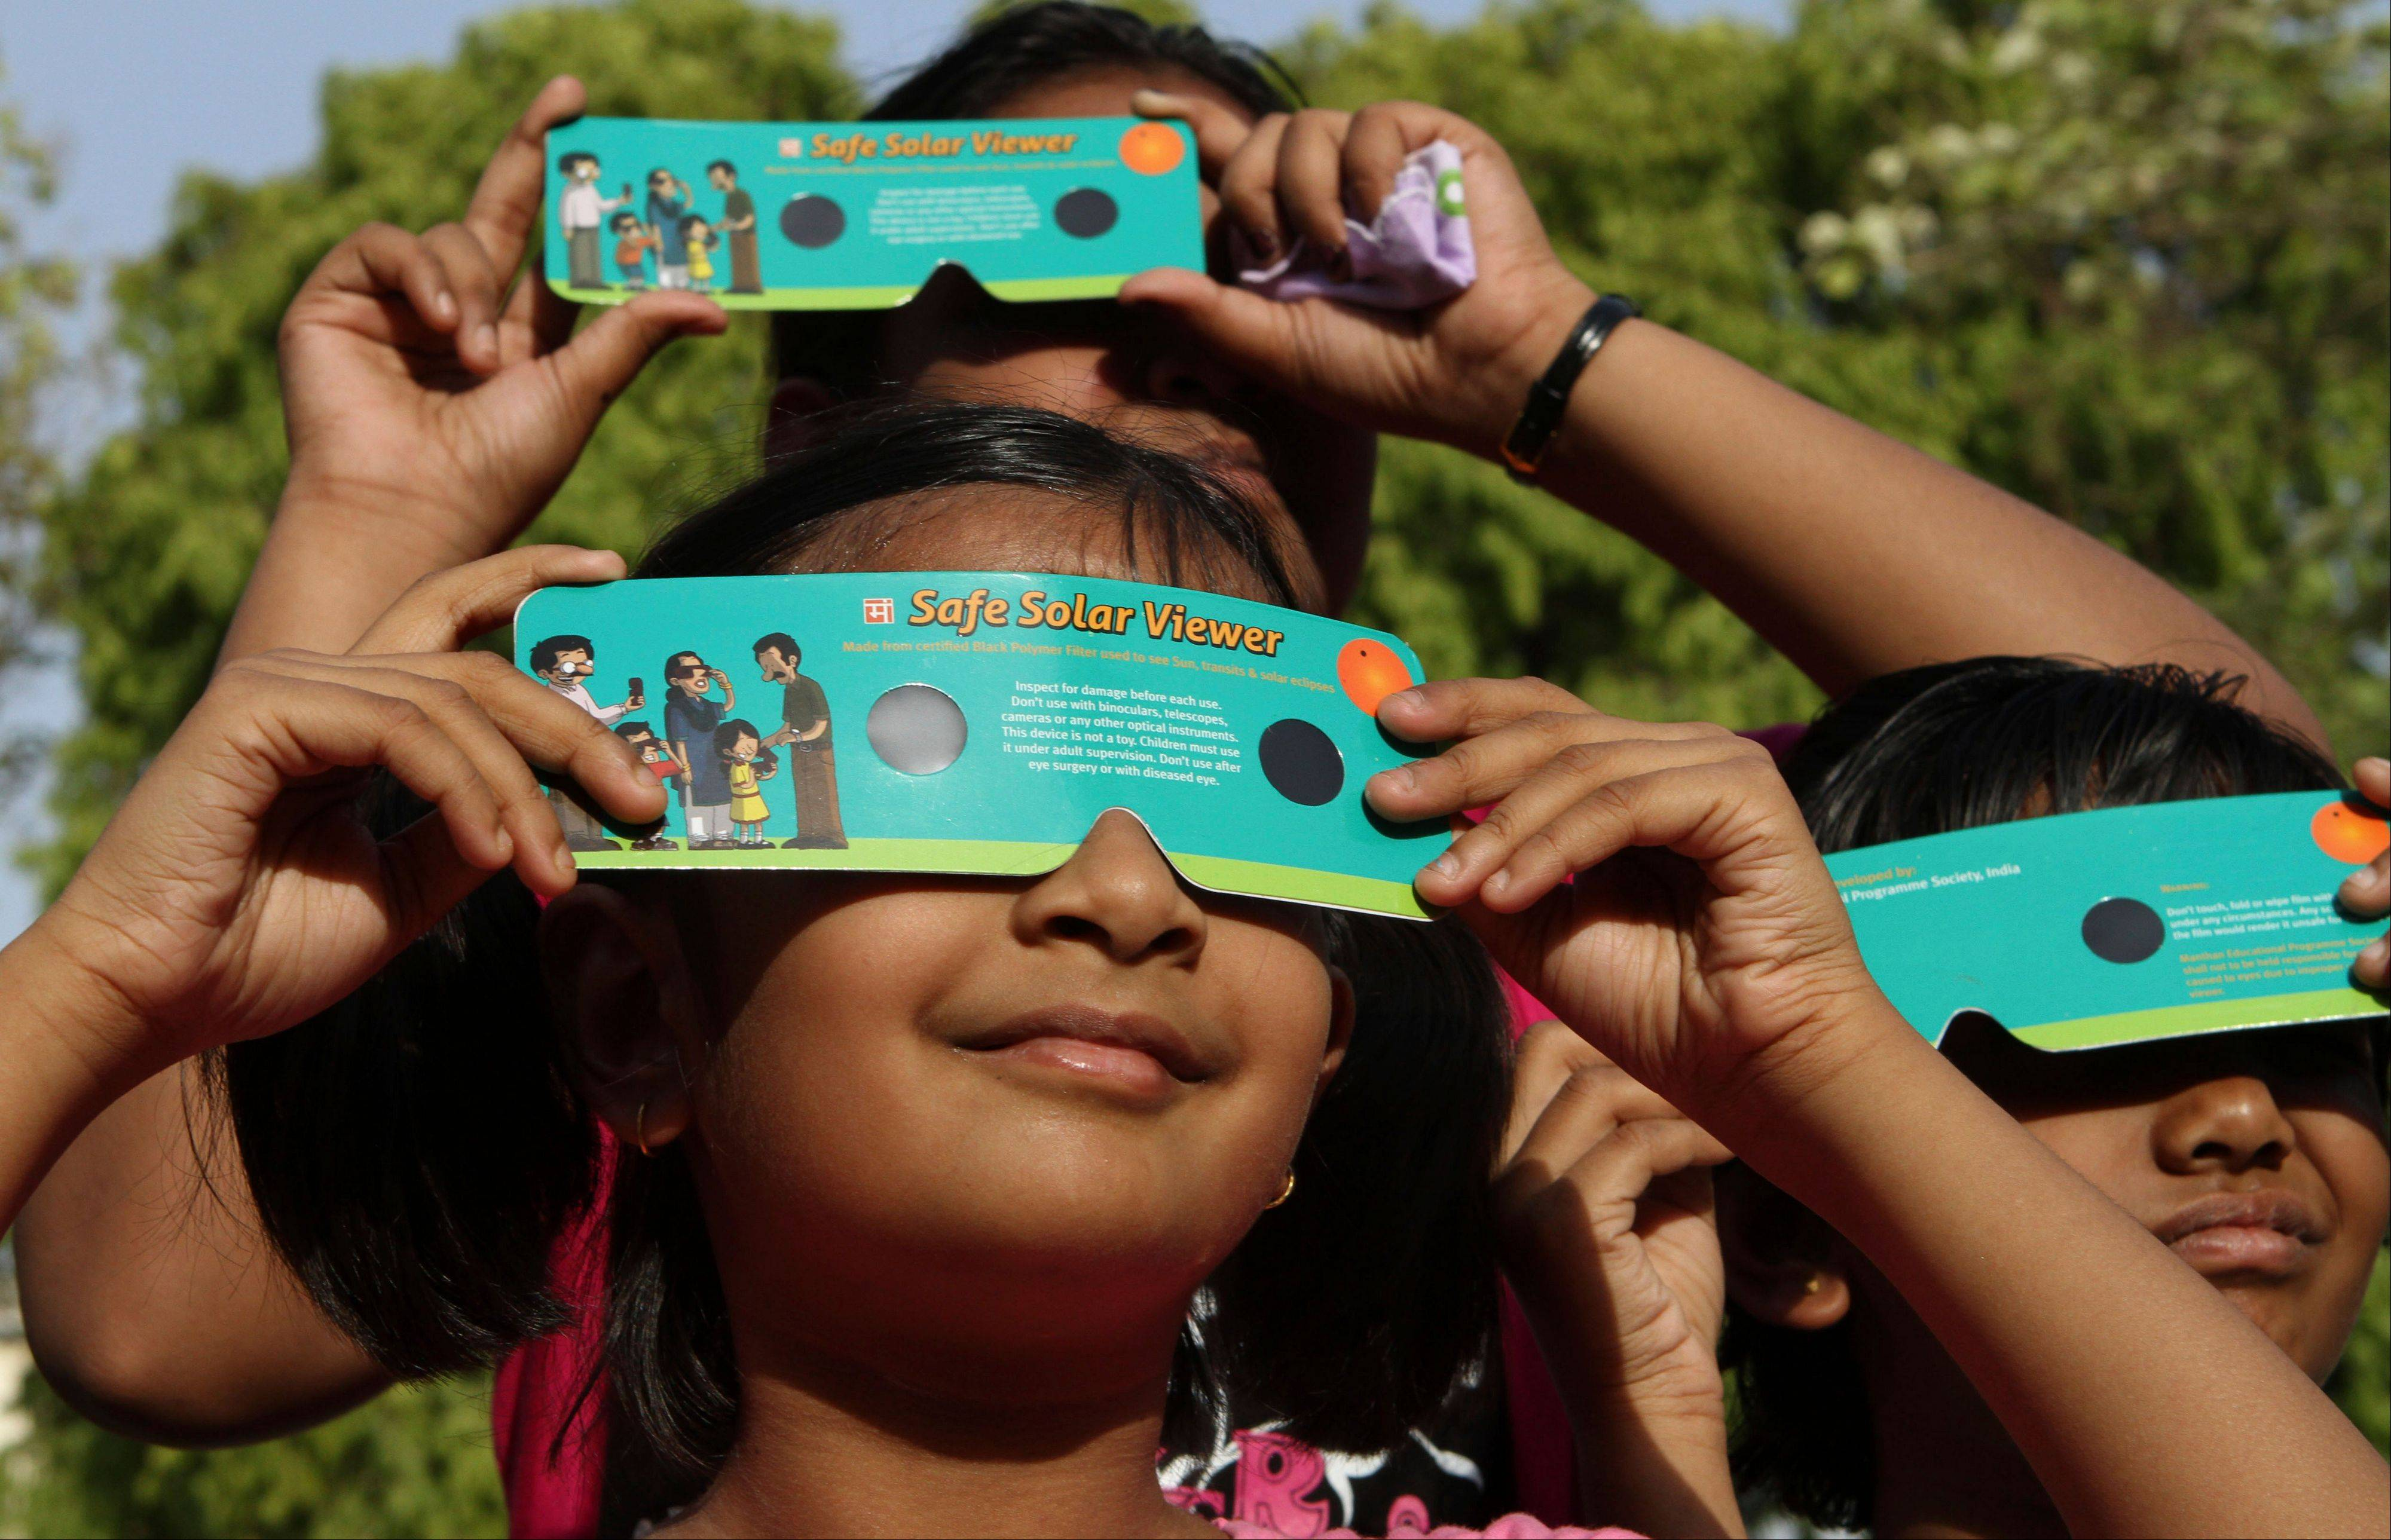 Indian children use cardboard eclipse glasses as they prepare to watch the transit of Venus in Allahabad, India, Tuesday, June 5, 2012. Stargazers around the world are setting up special telescopes and passing out cardboard eclipse glasses to view the once-in-a-lifetime celestial cameo of Venus passing in front of the sun. Venus is Earth's second-closest neighboring planet.